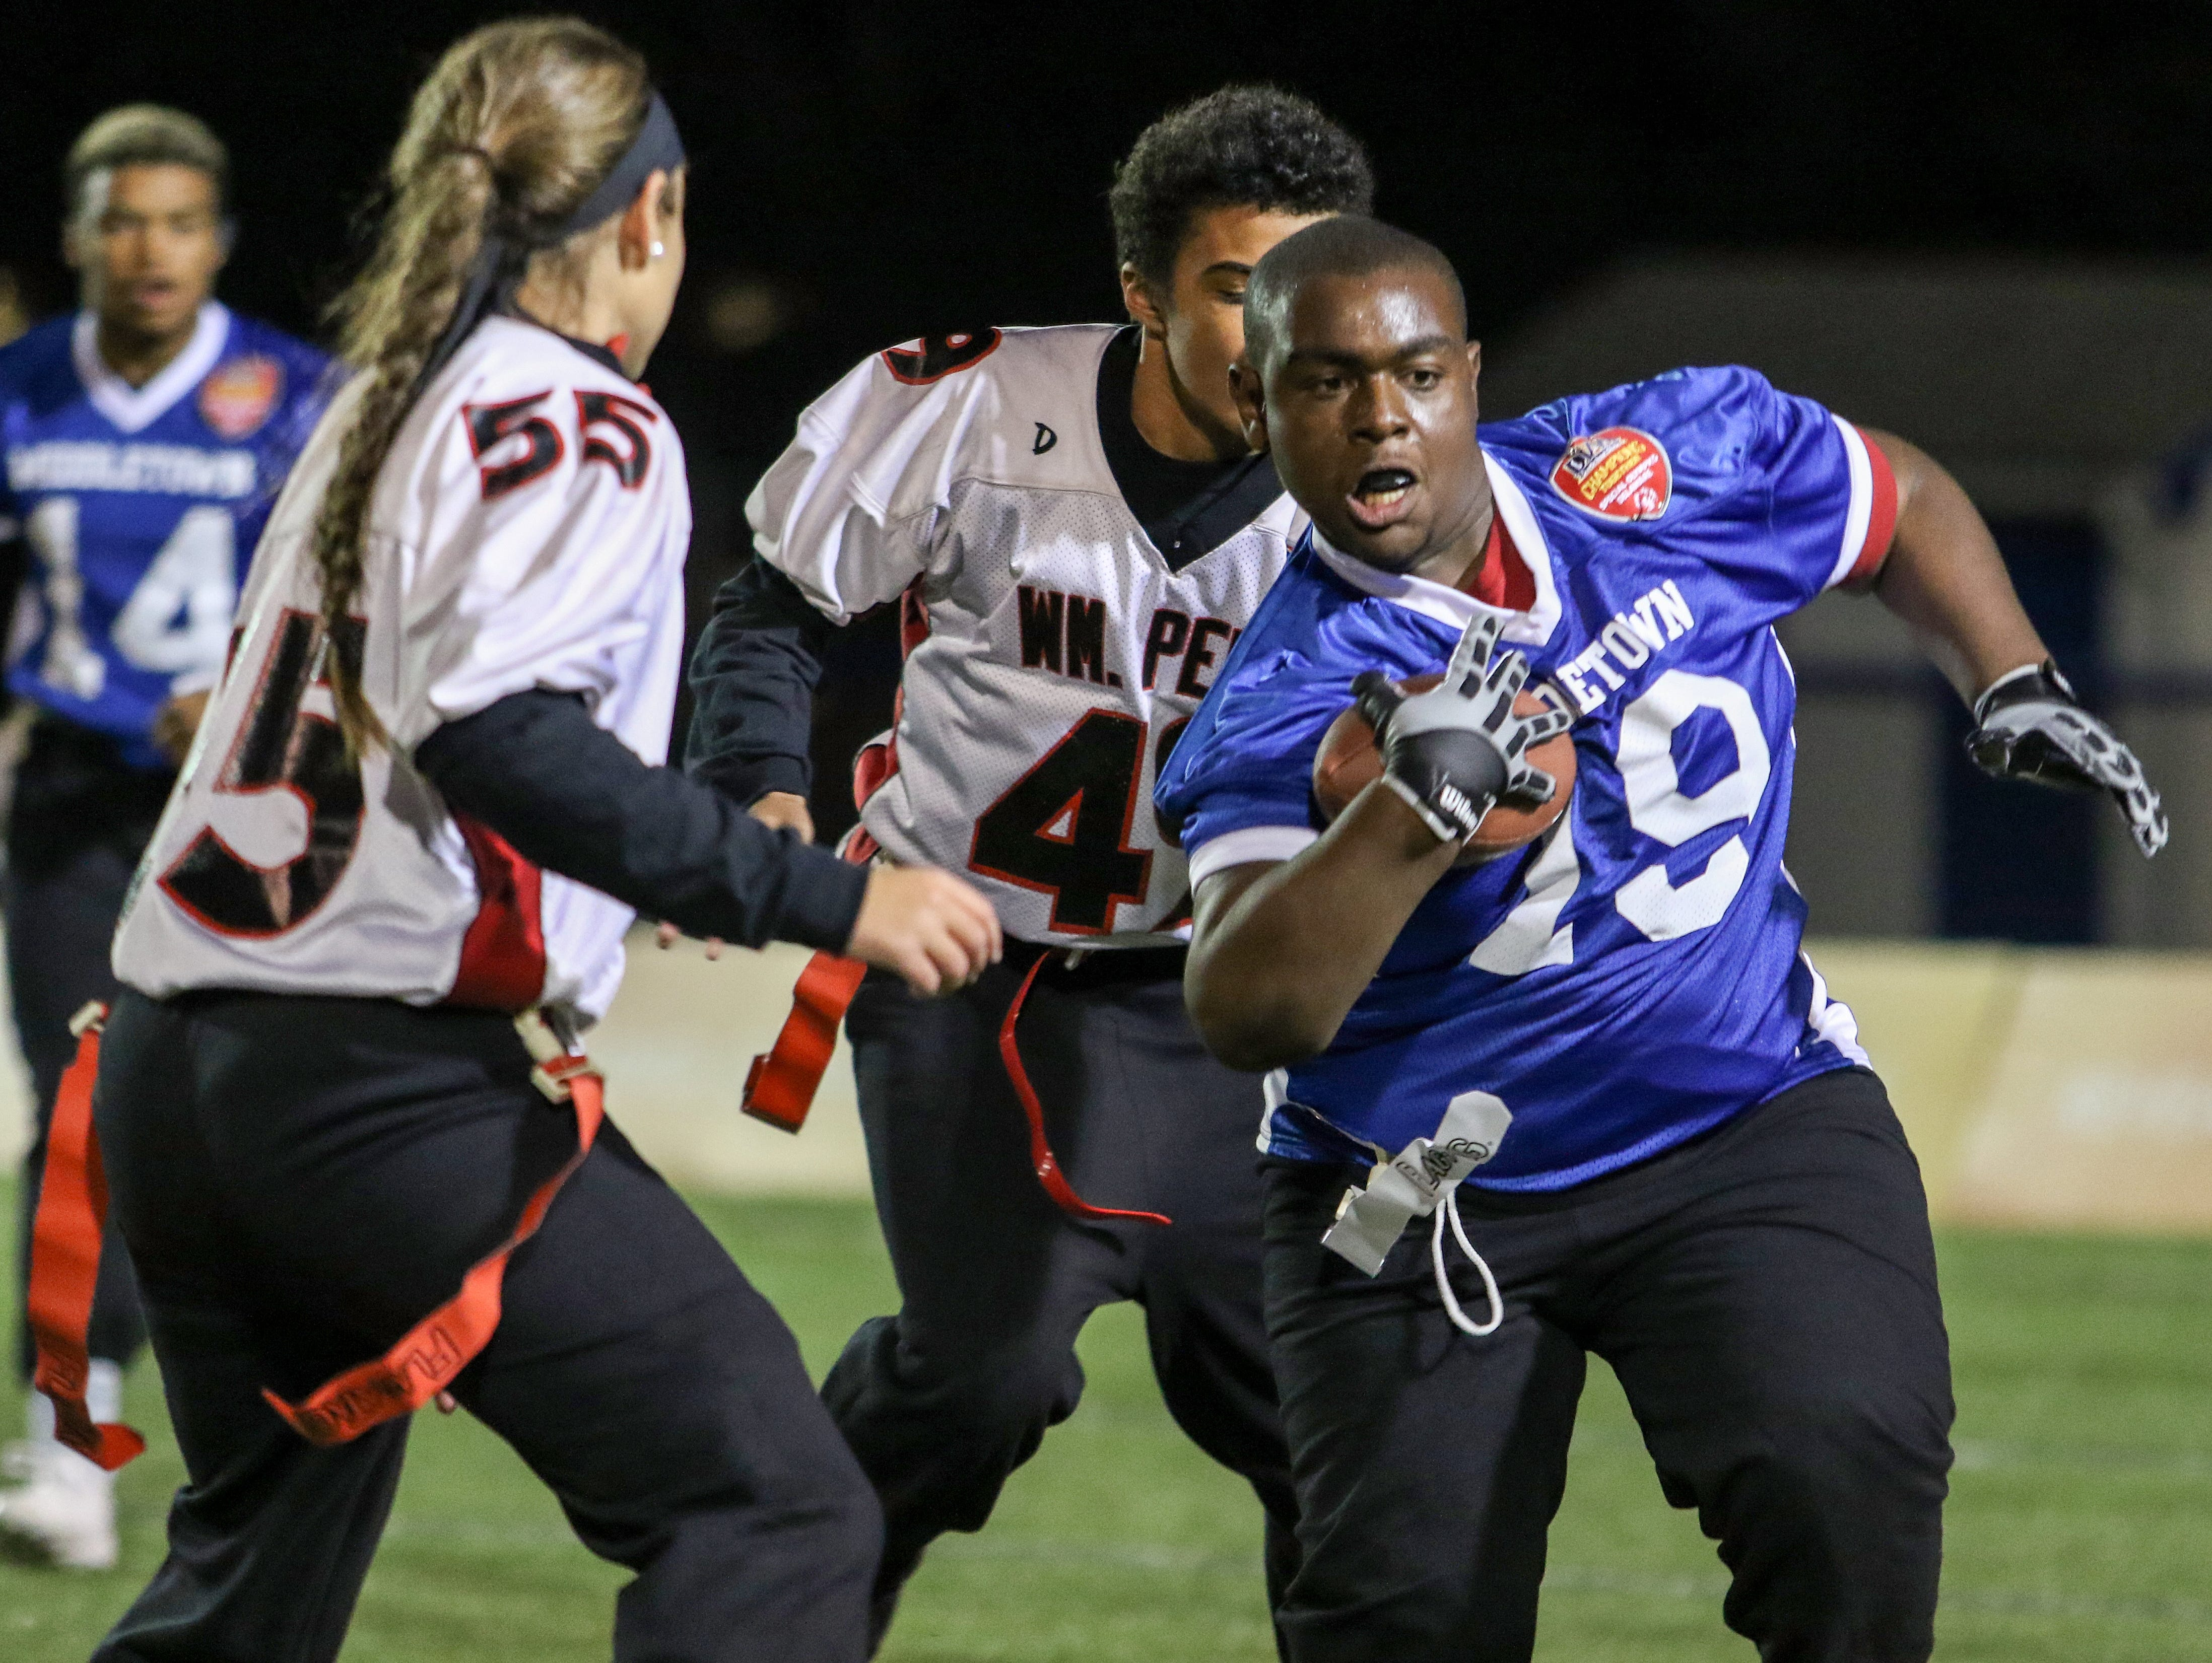 Middletown Unified athlete Davonte Bessix tries to escape the reach of William Penn athlete Nick Kane and partner Jessica Behornar.